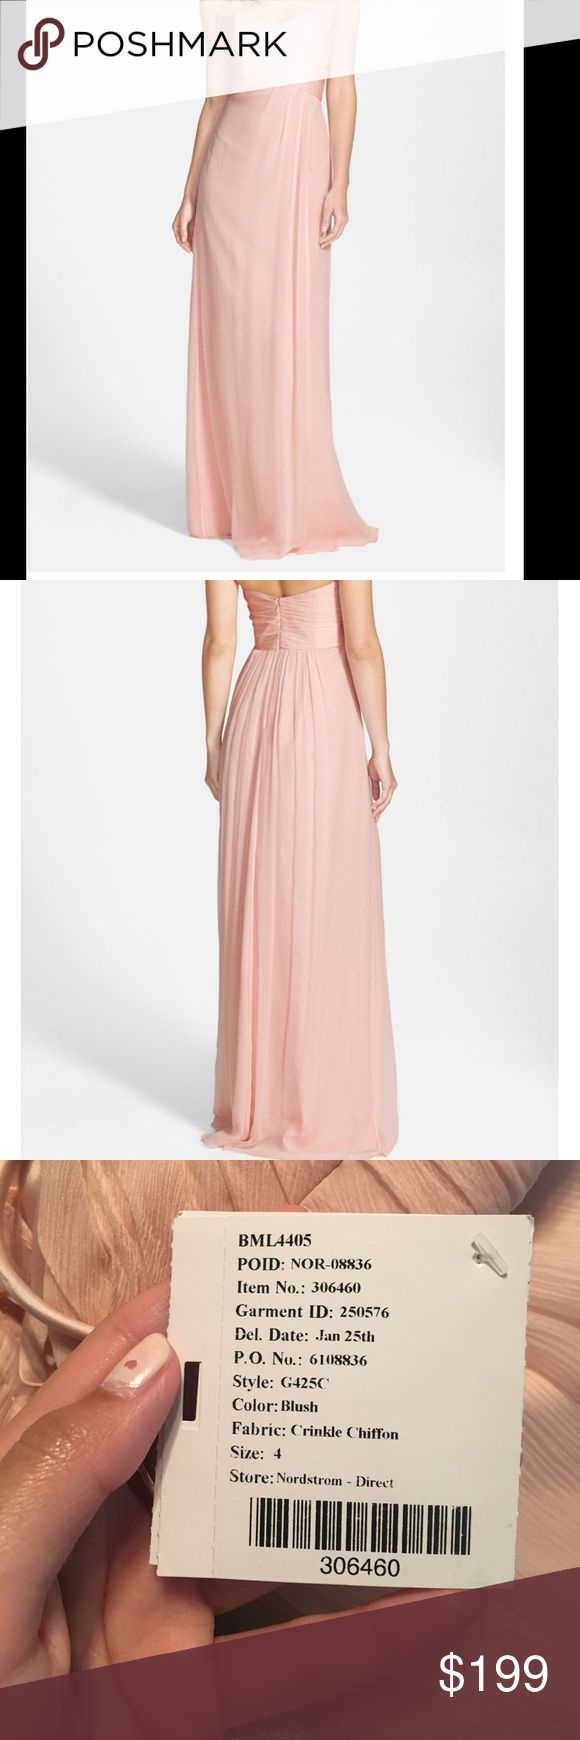 """Strapless Crinkle Chiffon Dress from Nordstrom I wore this dress for prom four years ago and have not worn it since. It is specified as a bridesmaids dress but can be worn for any formal occasion. Retails online for $310.  I had the dress altered to fit a size 5'3"""" / 5'4"""" tall girl w/ heels and the bust is taken in to accommodate smaller chested women (A's). Dress will be professionally dry cleaned prior to shipping out :-) tags are on. Amsale Dresses Wedding"""